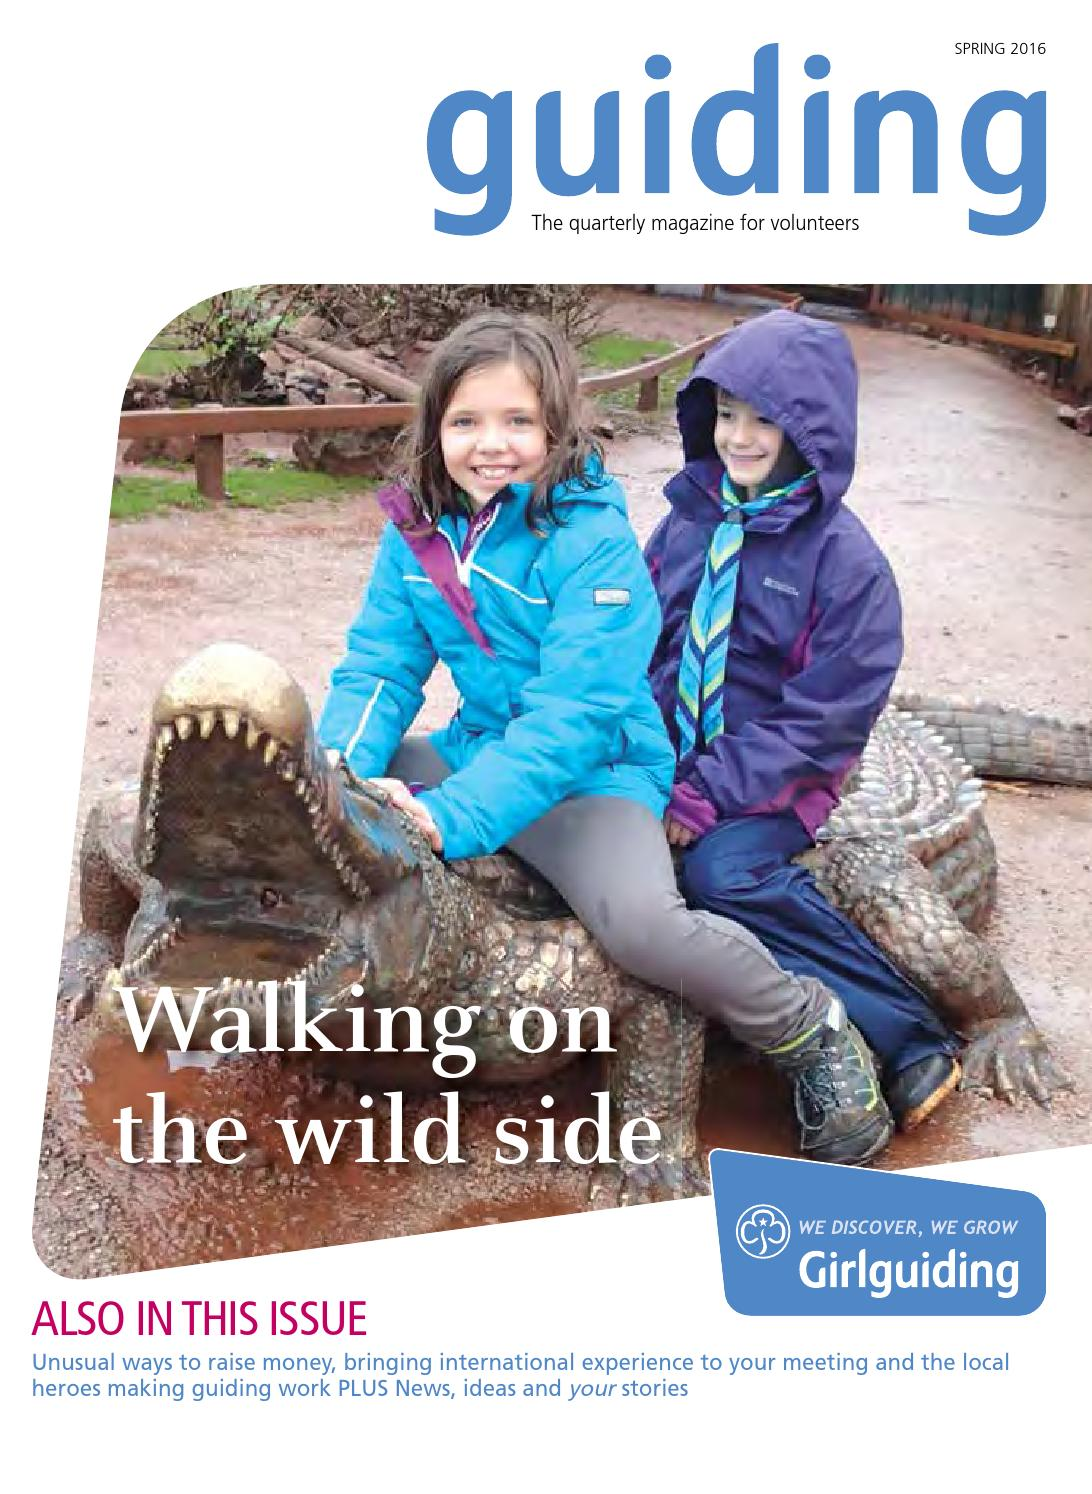 8177d8bc6a46 guiding magazine spring 2016 by Girlguiding - issuu